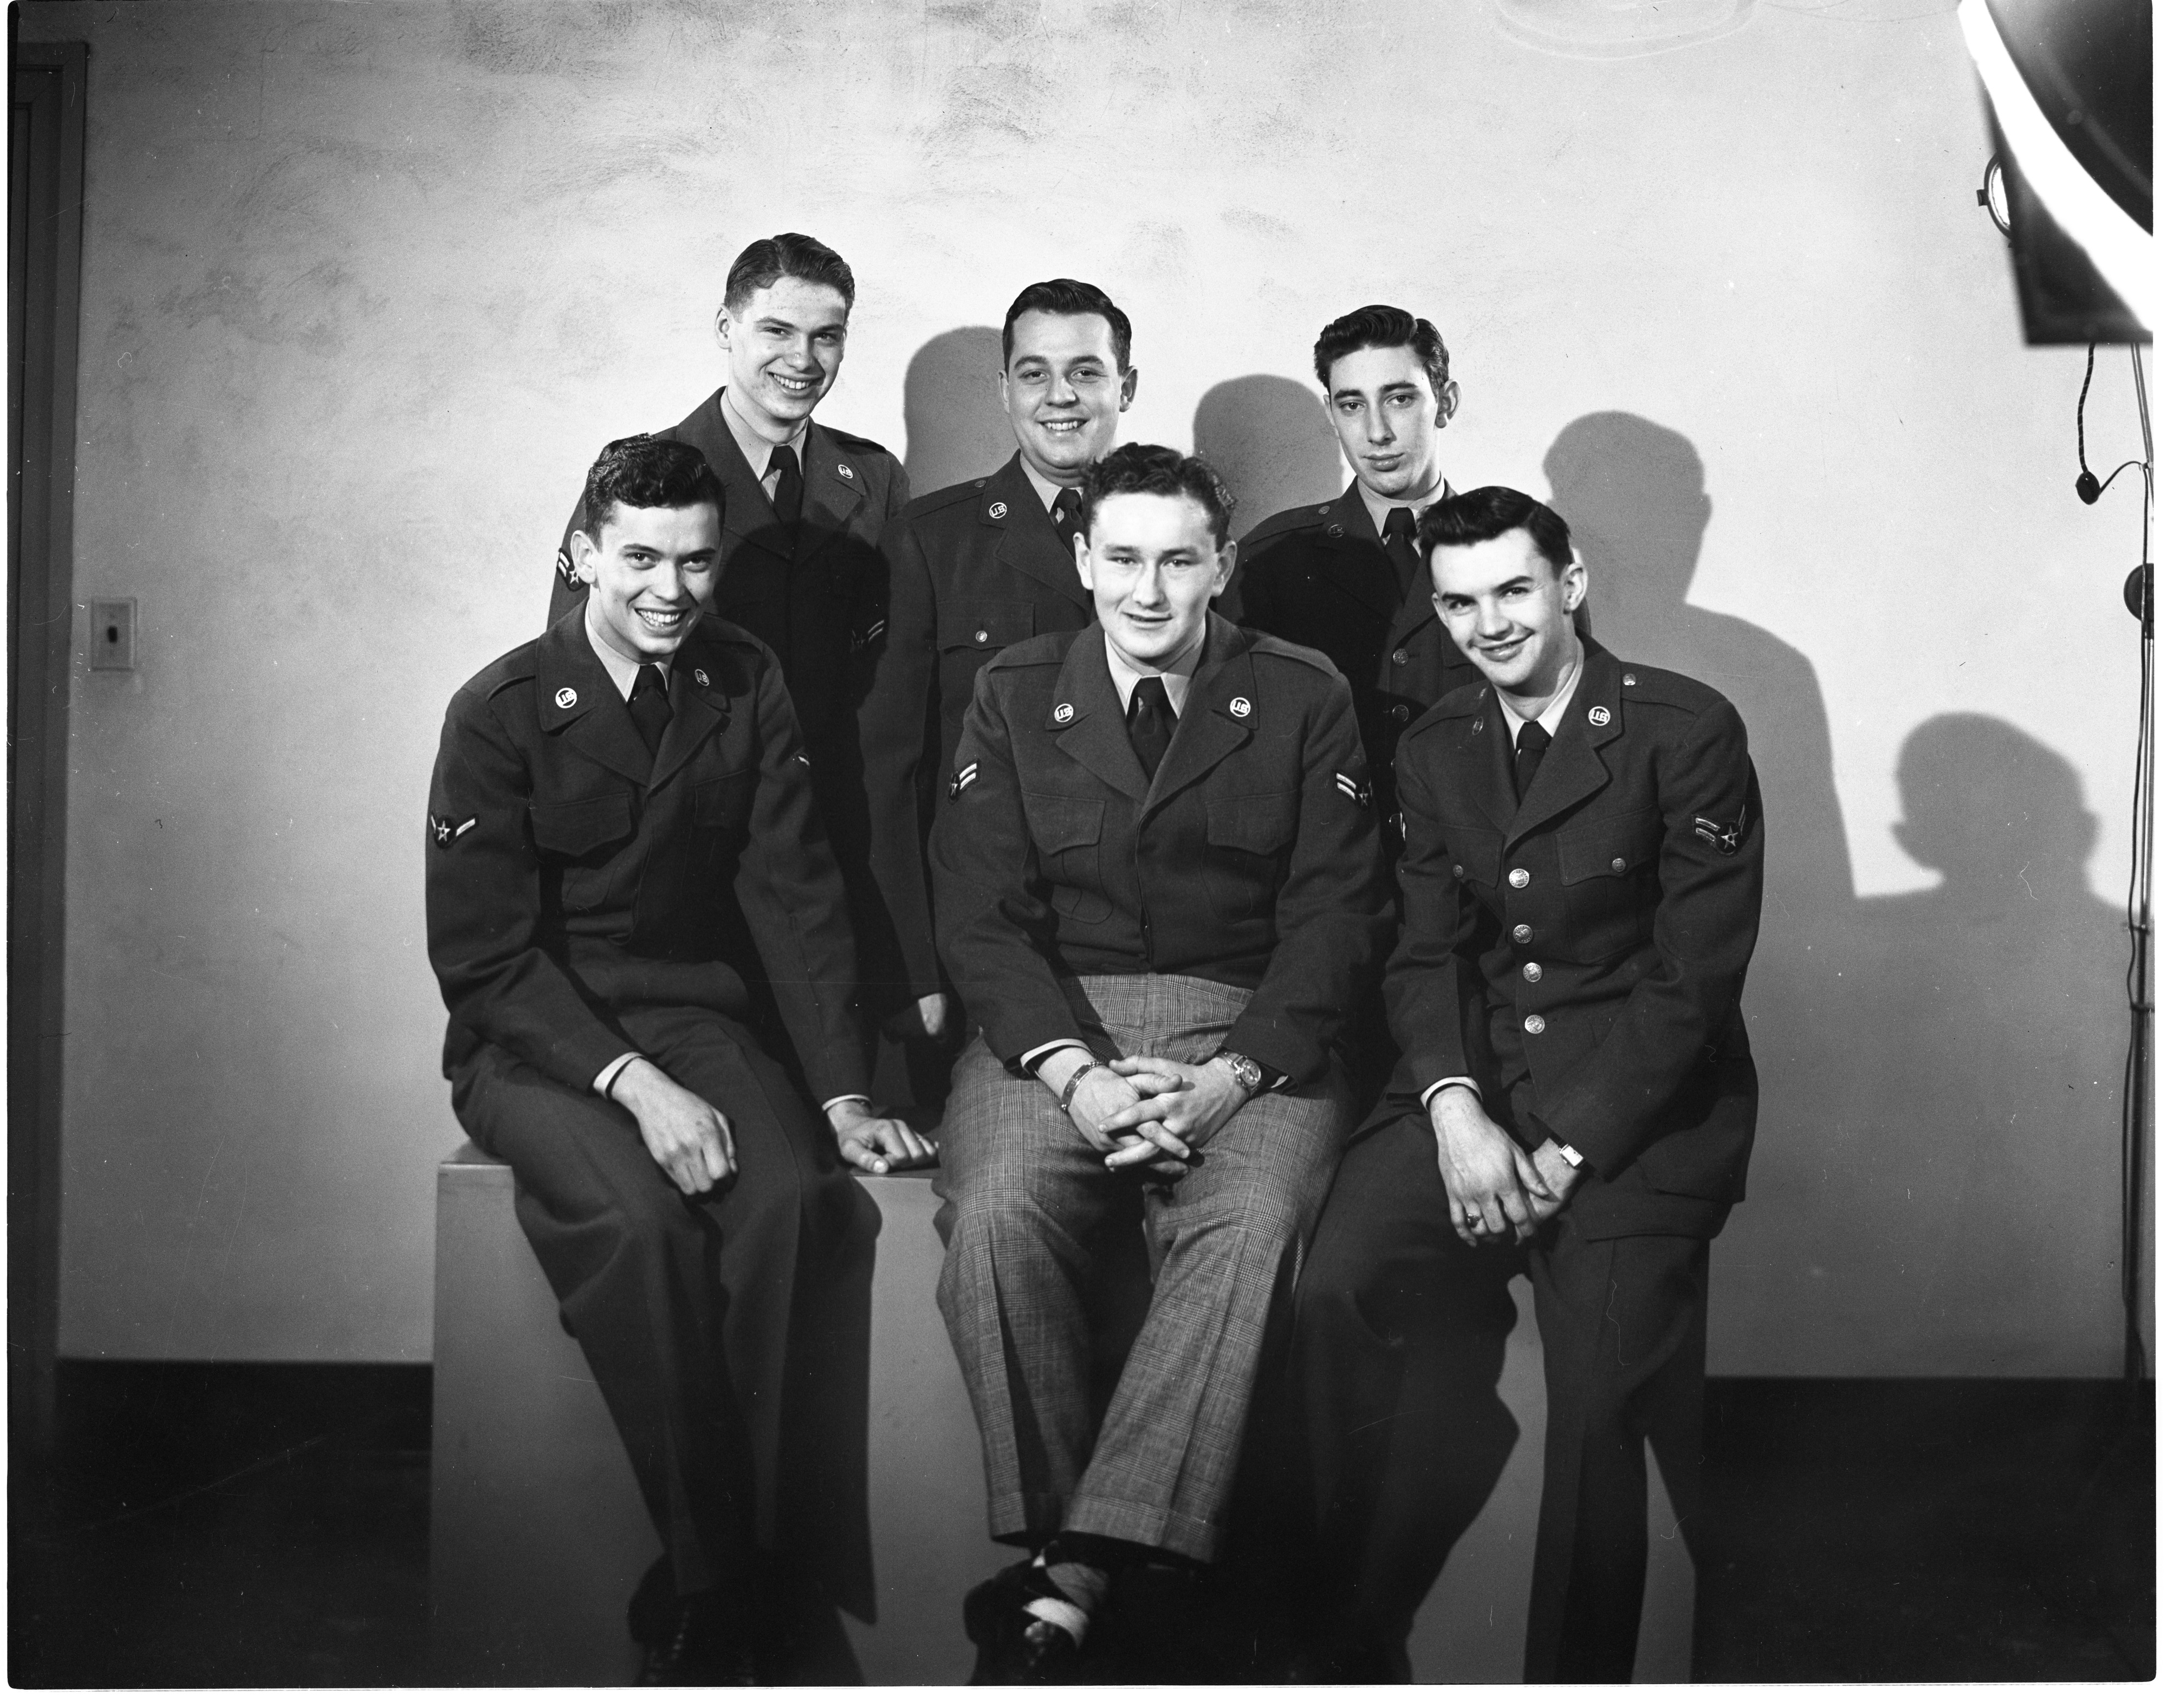 Six Friends - One Year After Enlisting Together In U. S. Air Force, January 1952 image